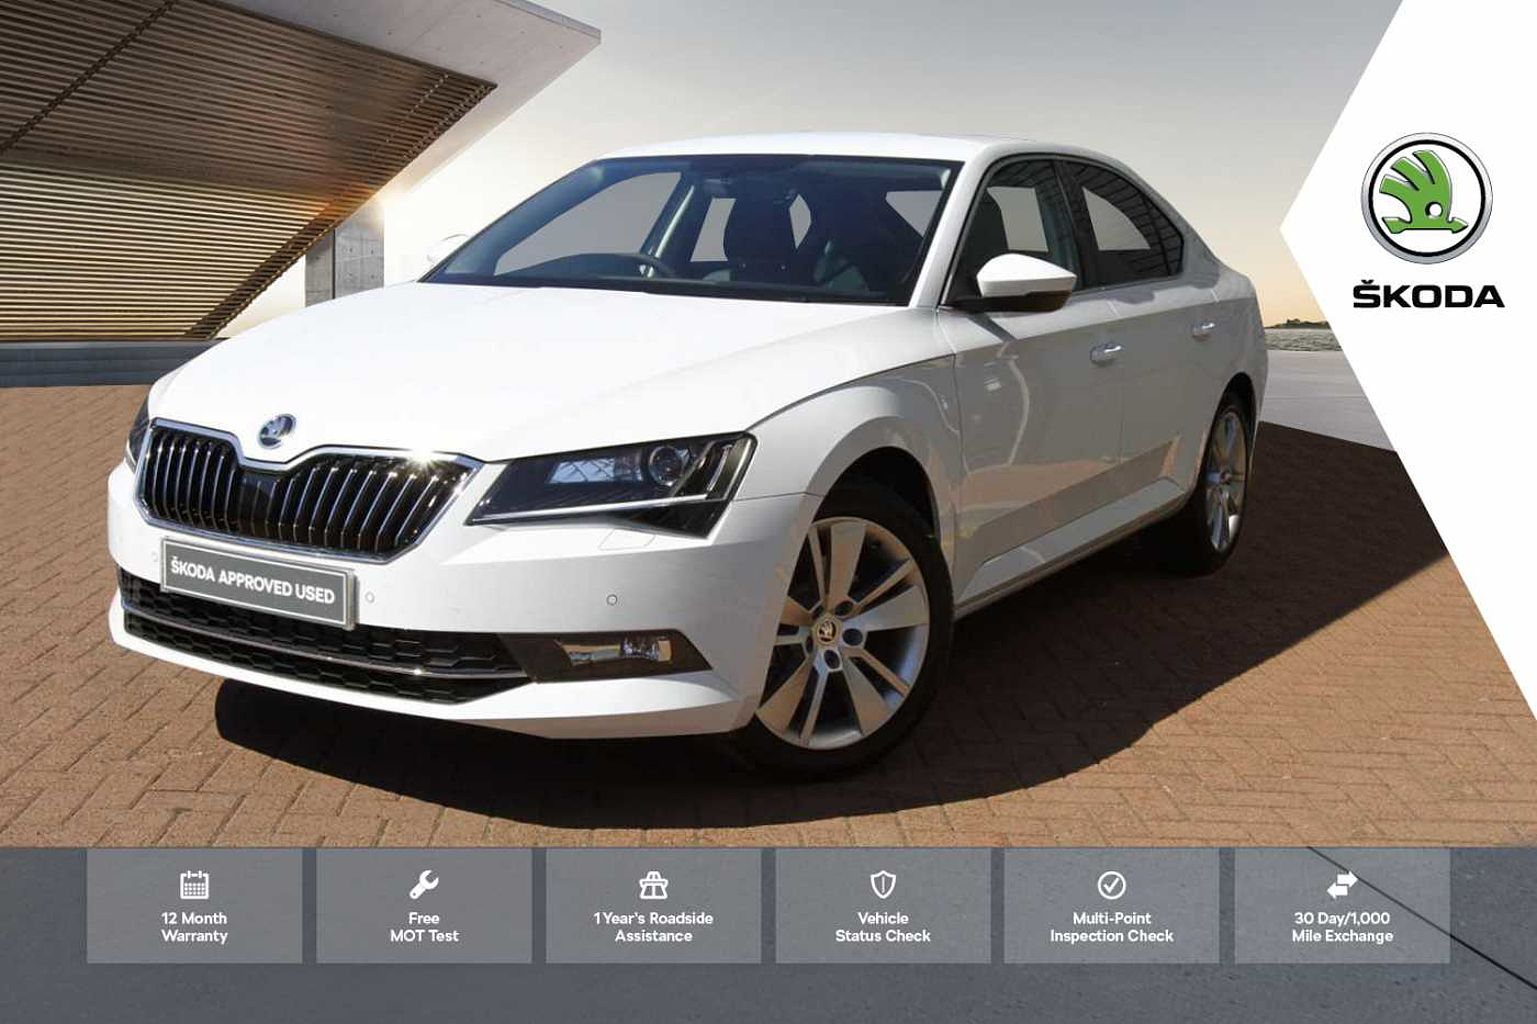 SKODA Superb 1.5 TSI 150ps SE L Executive ACT DSG Hatch